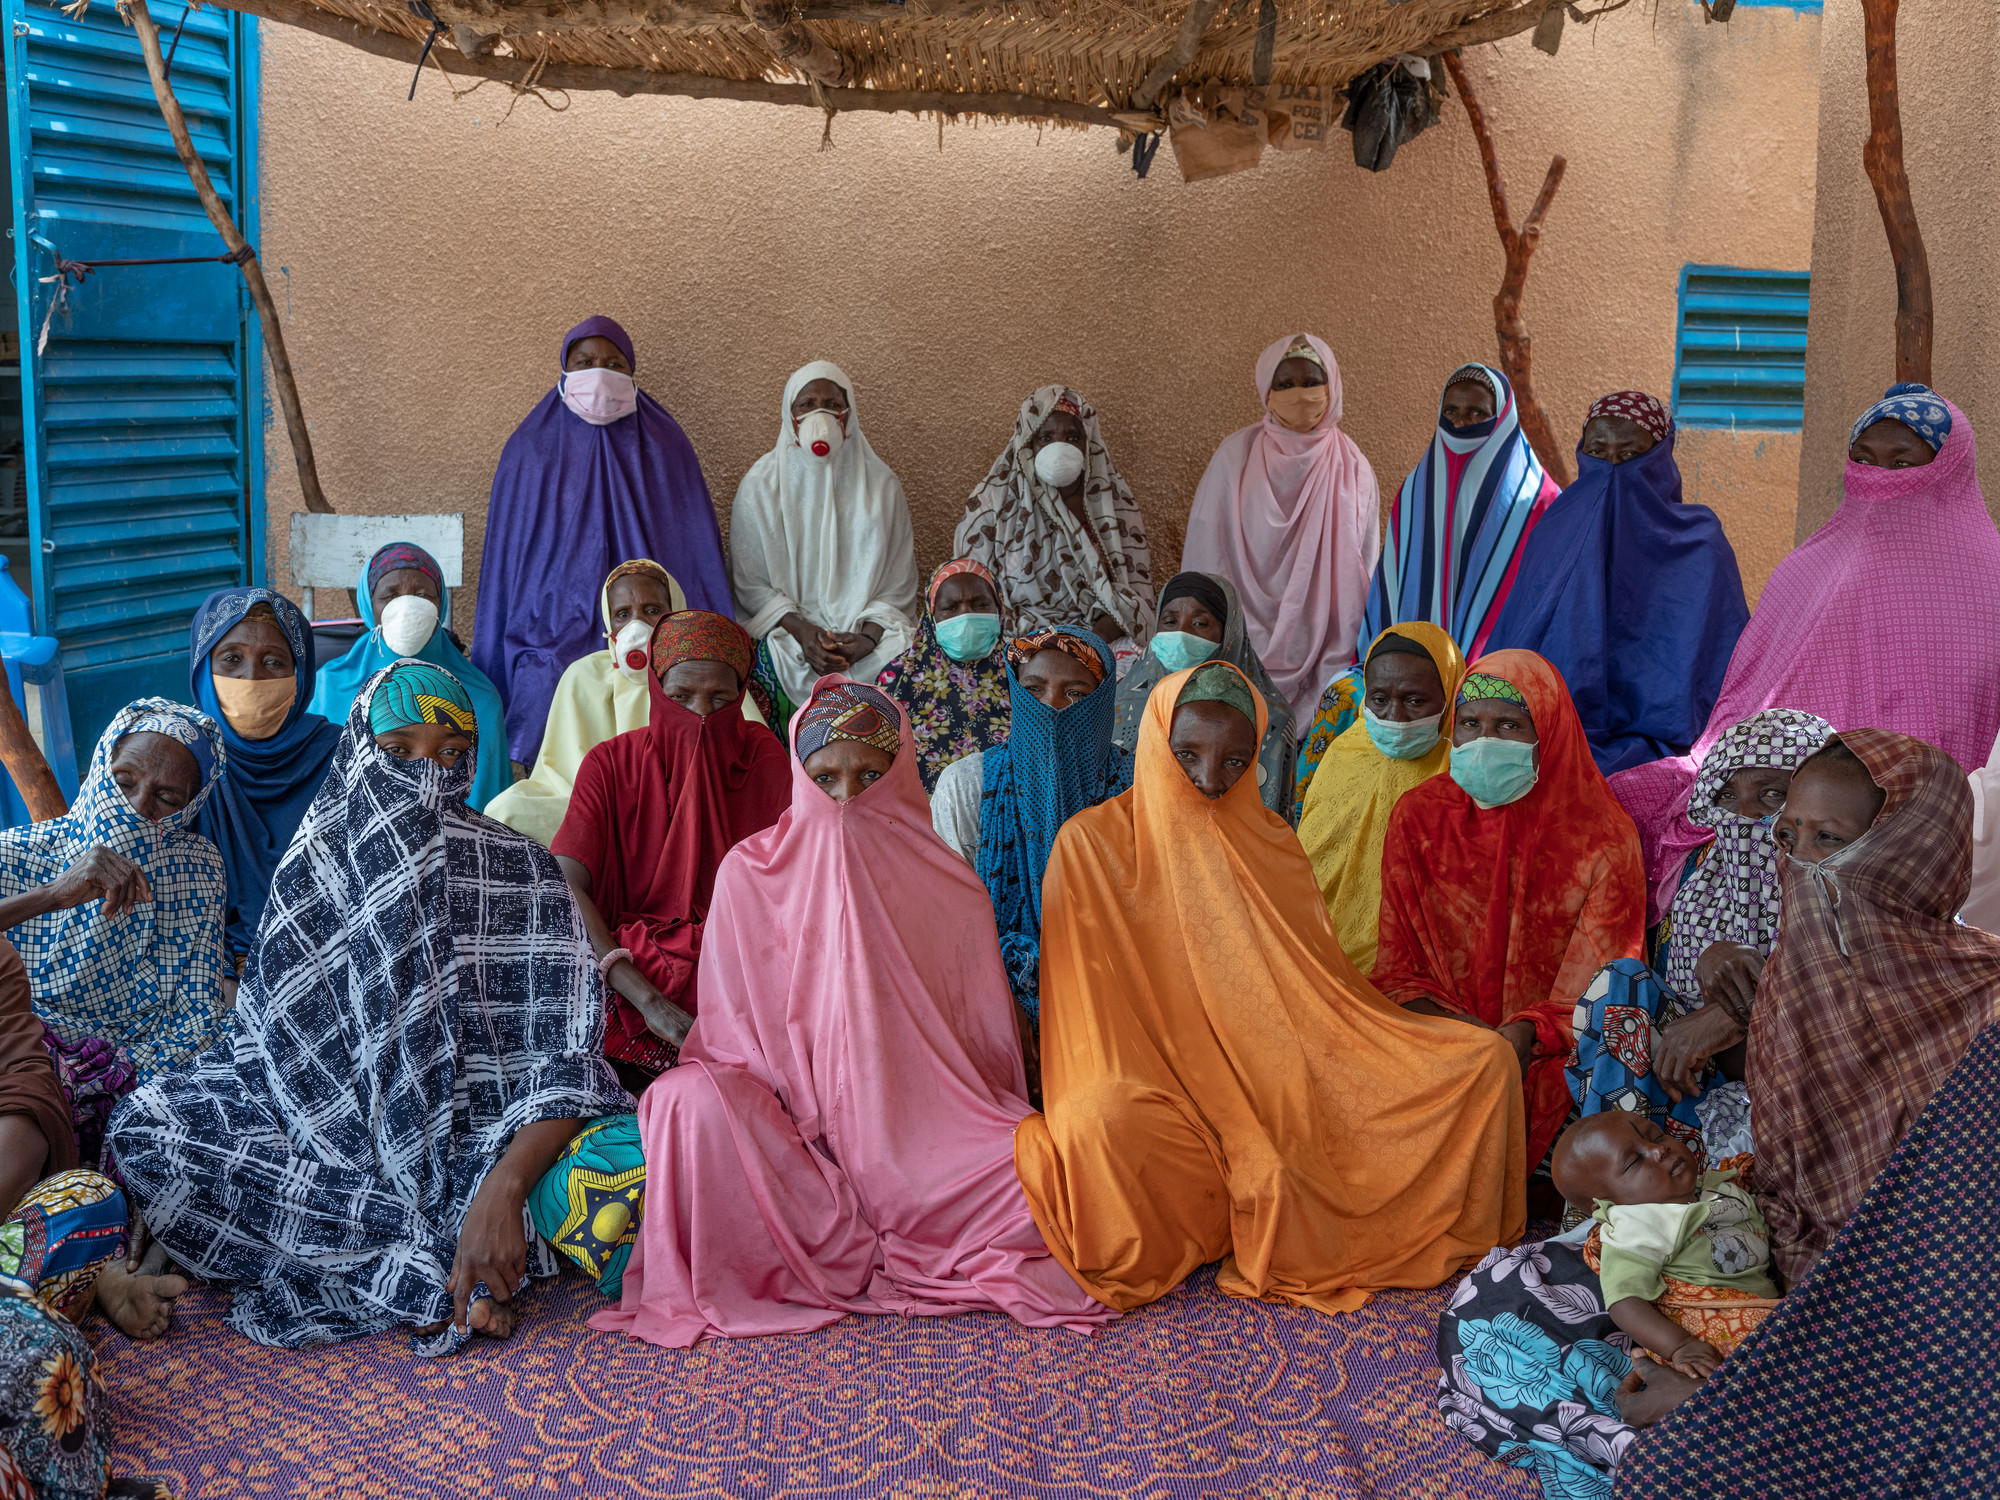 A group of women in colorful robes and face masks pose in rows facing forward.